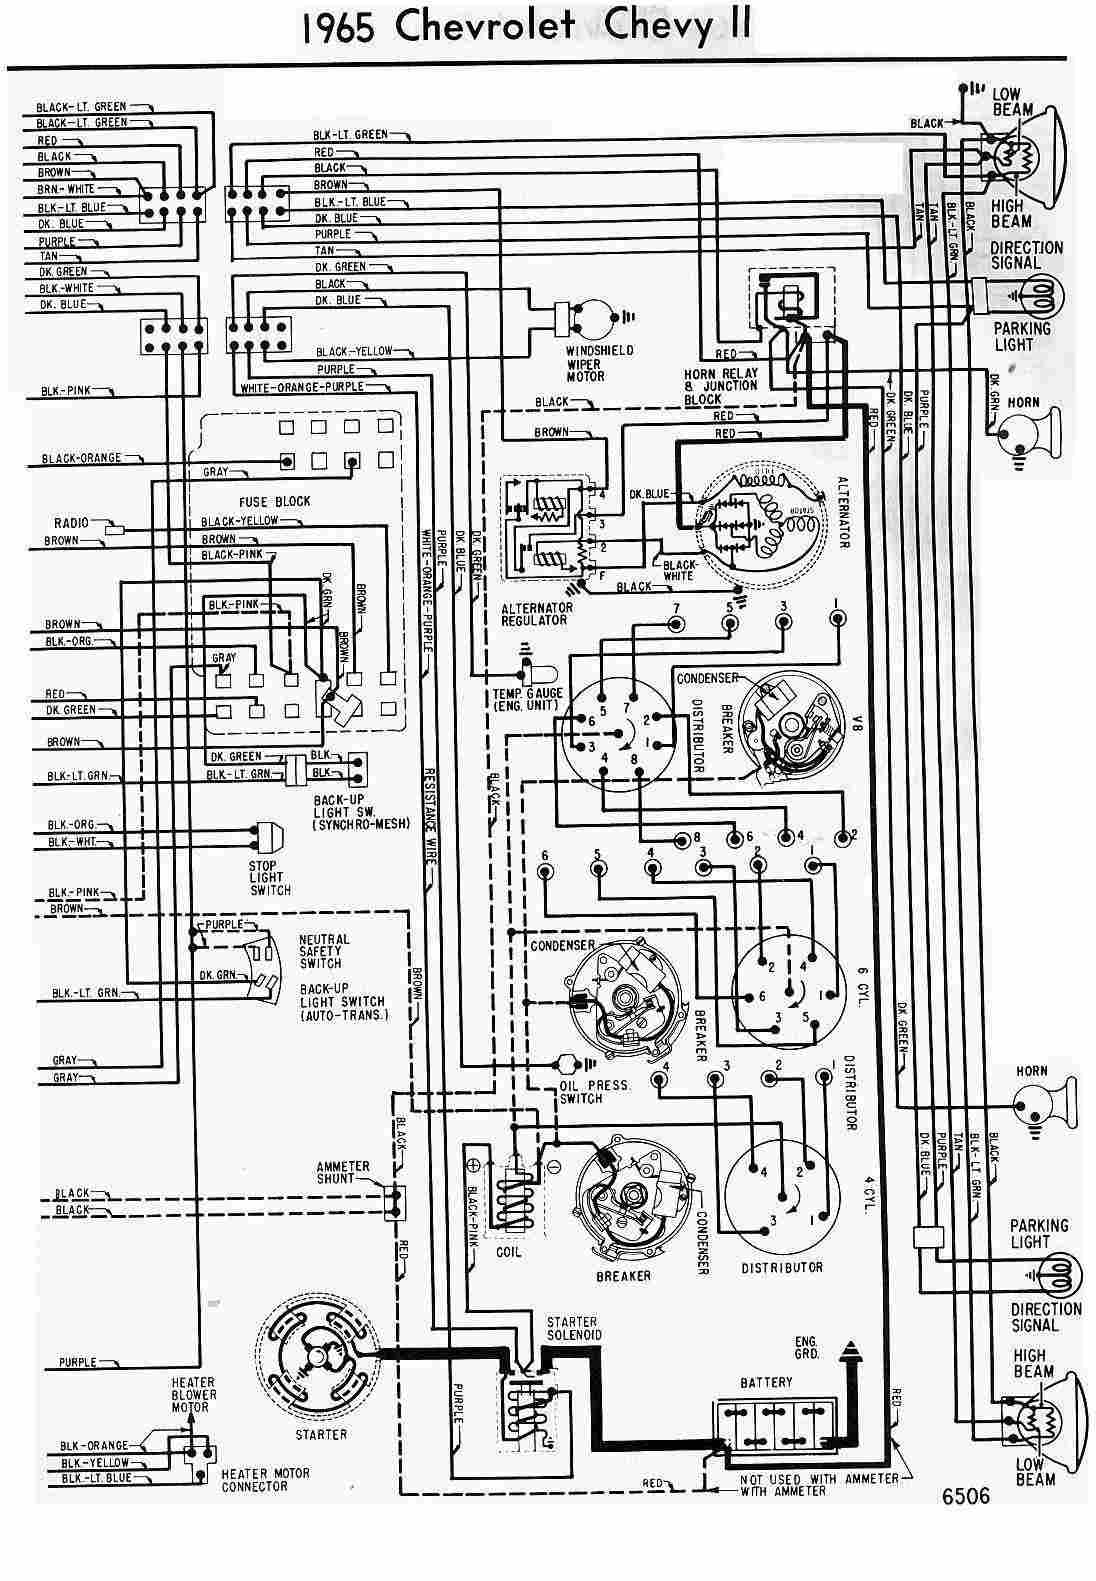 medium resolution of 1971 chevy nova wiring diagram on 1975 chevy truck wiring diagram75 nova wiring basic electronics wiring